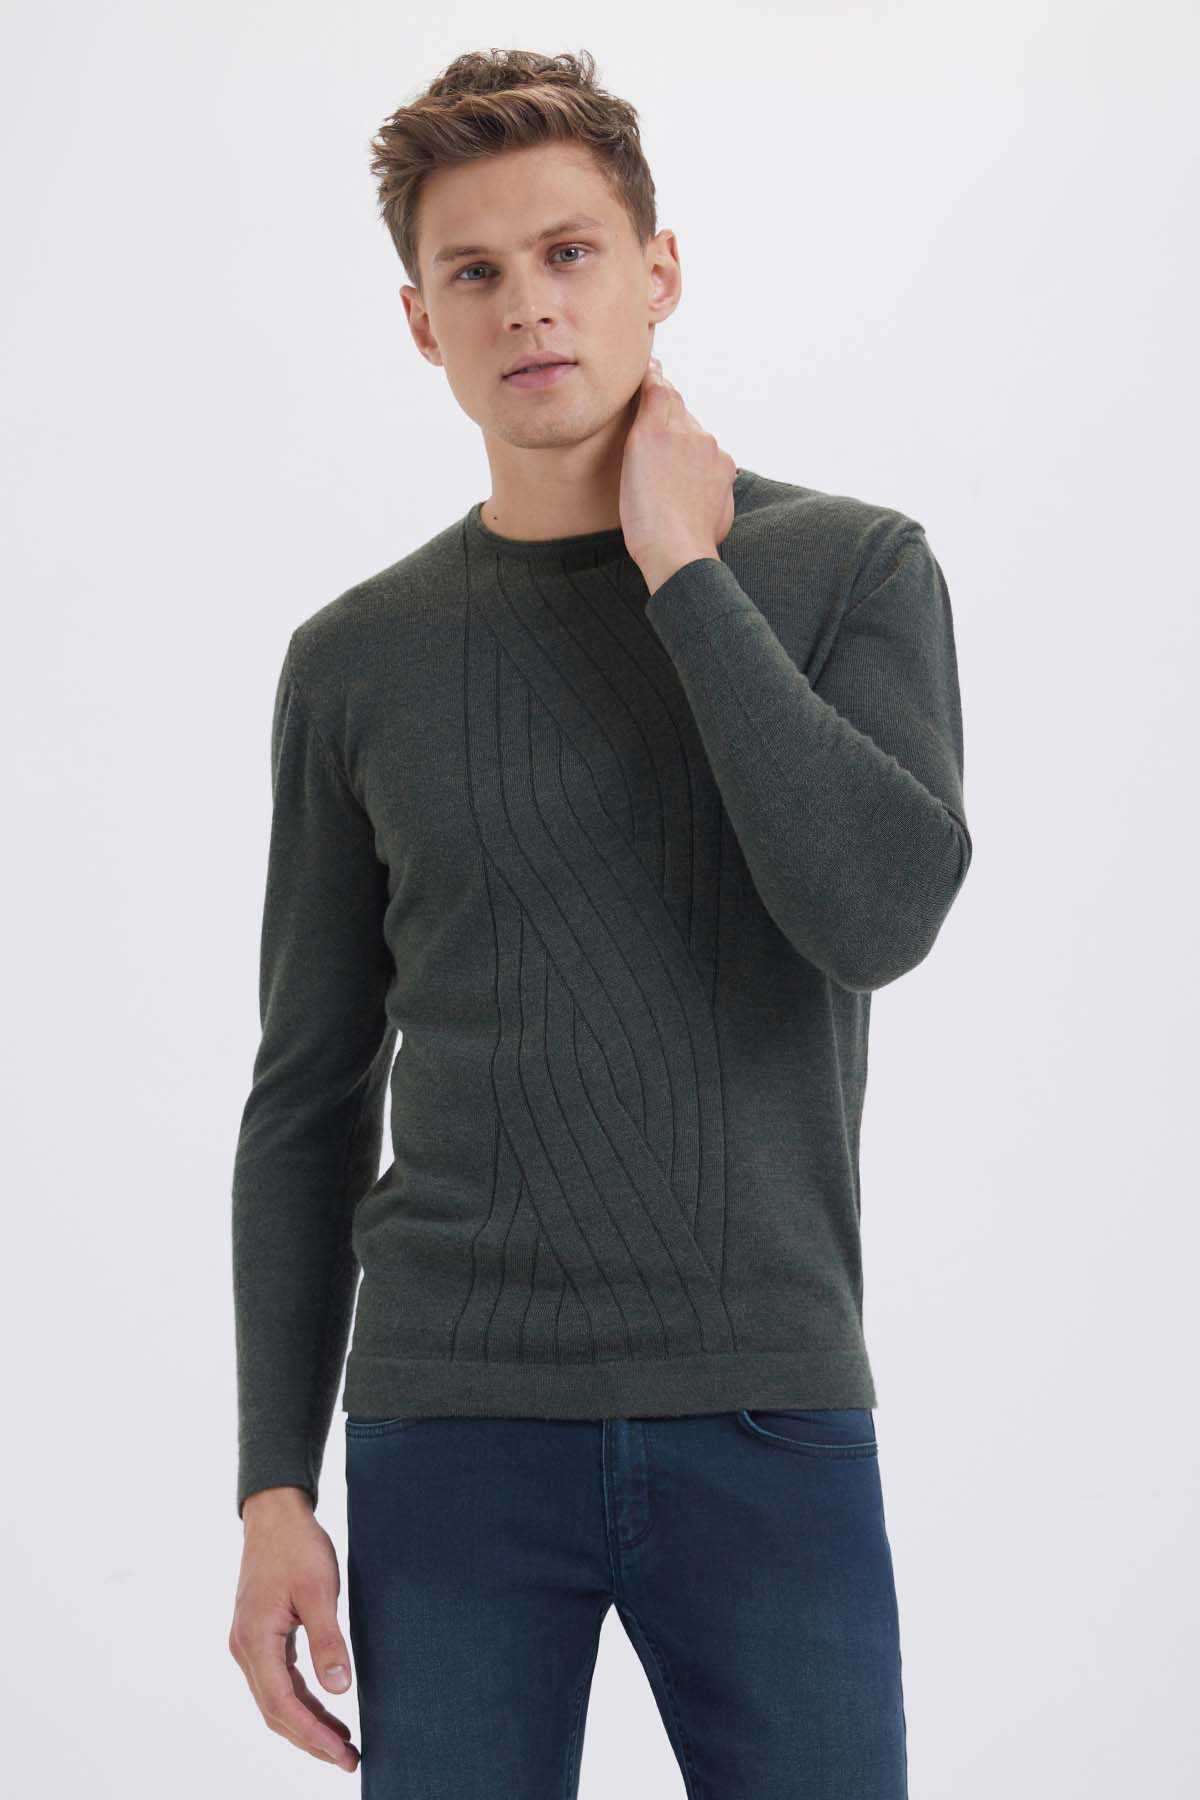 Hatem Saykı - Khaki Crew Neck Wool Sweater